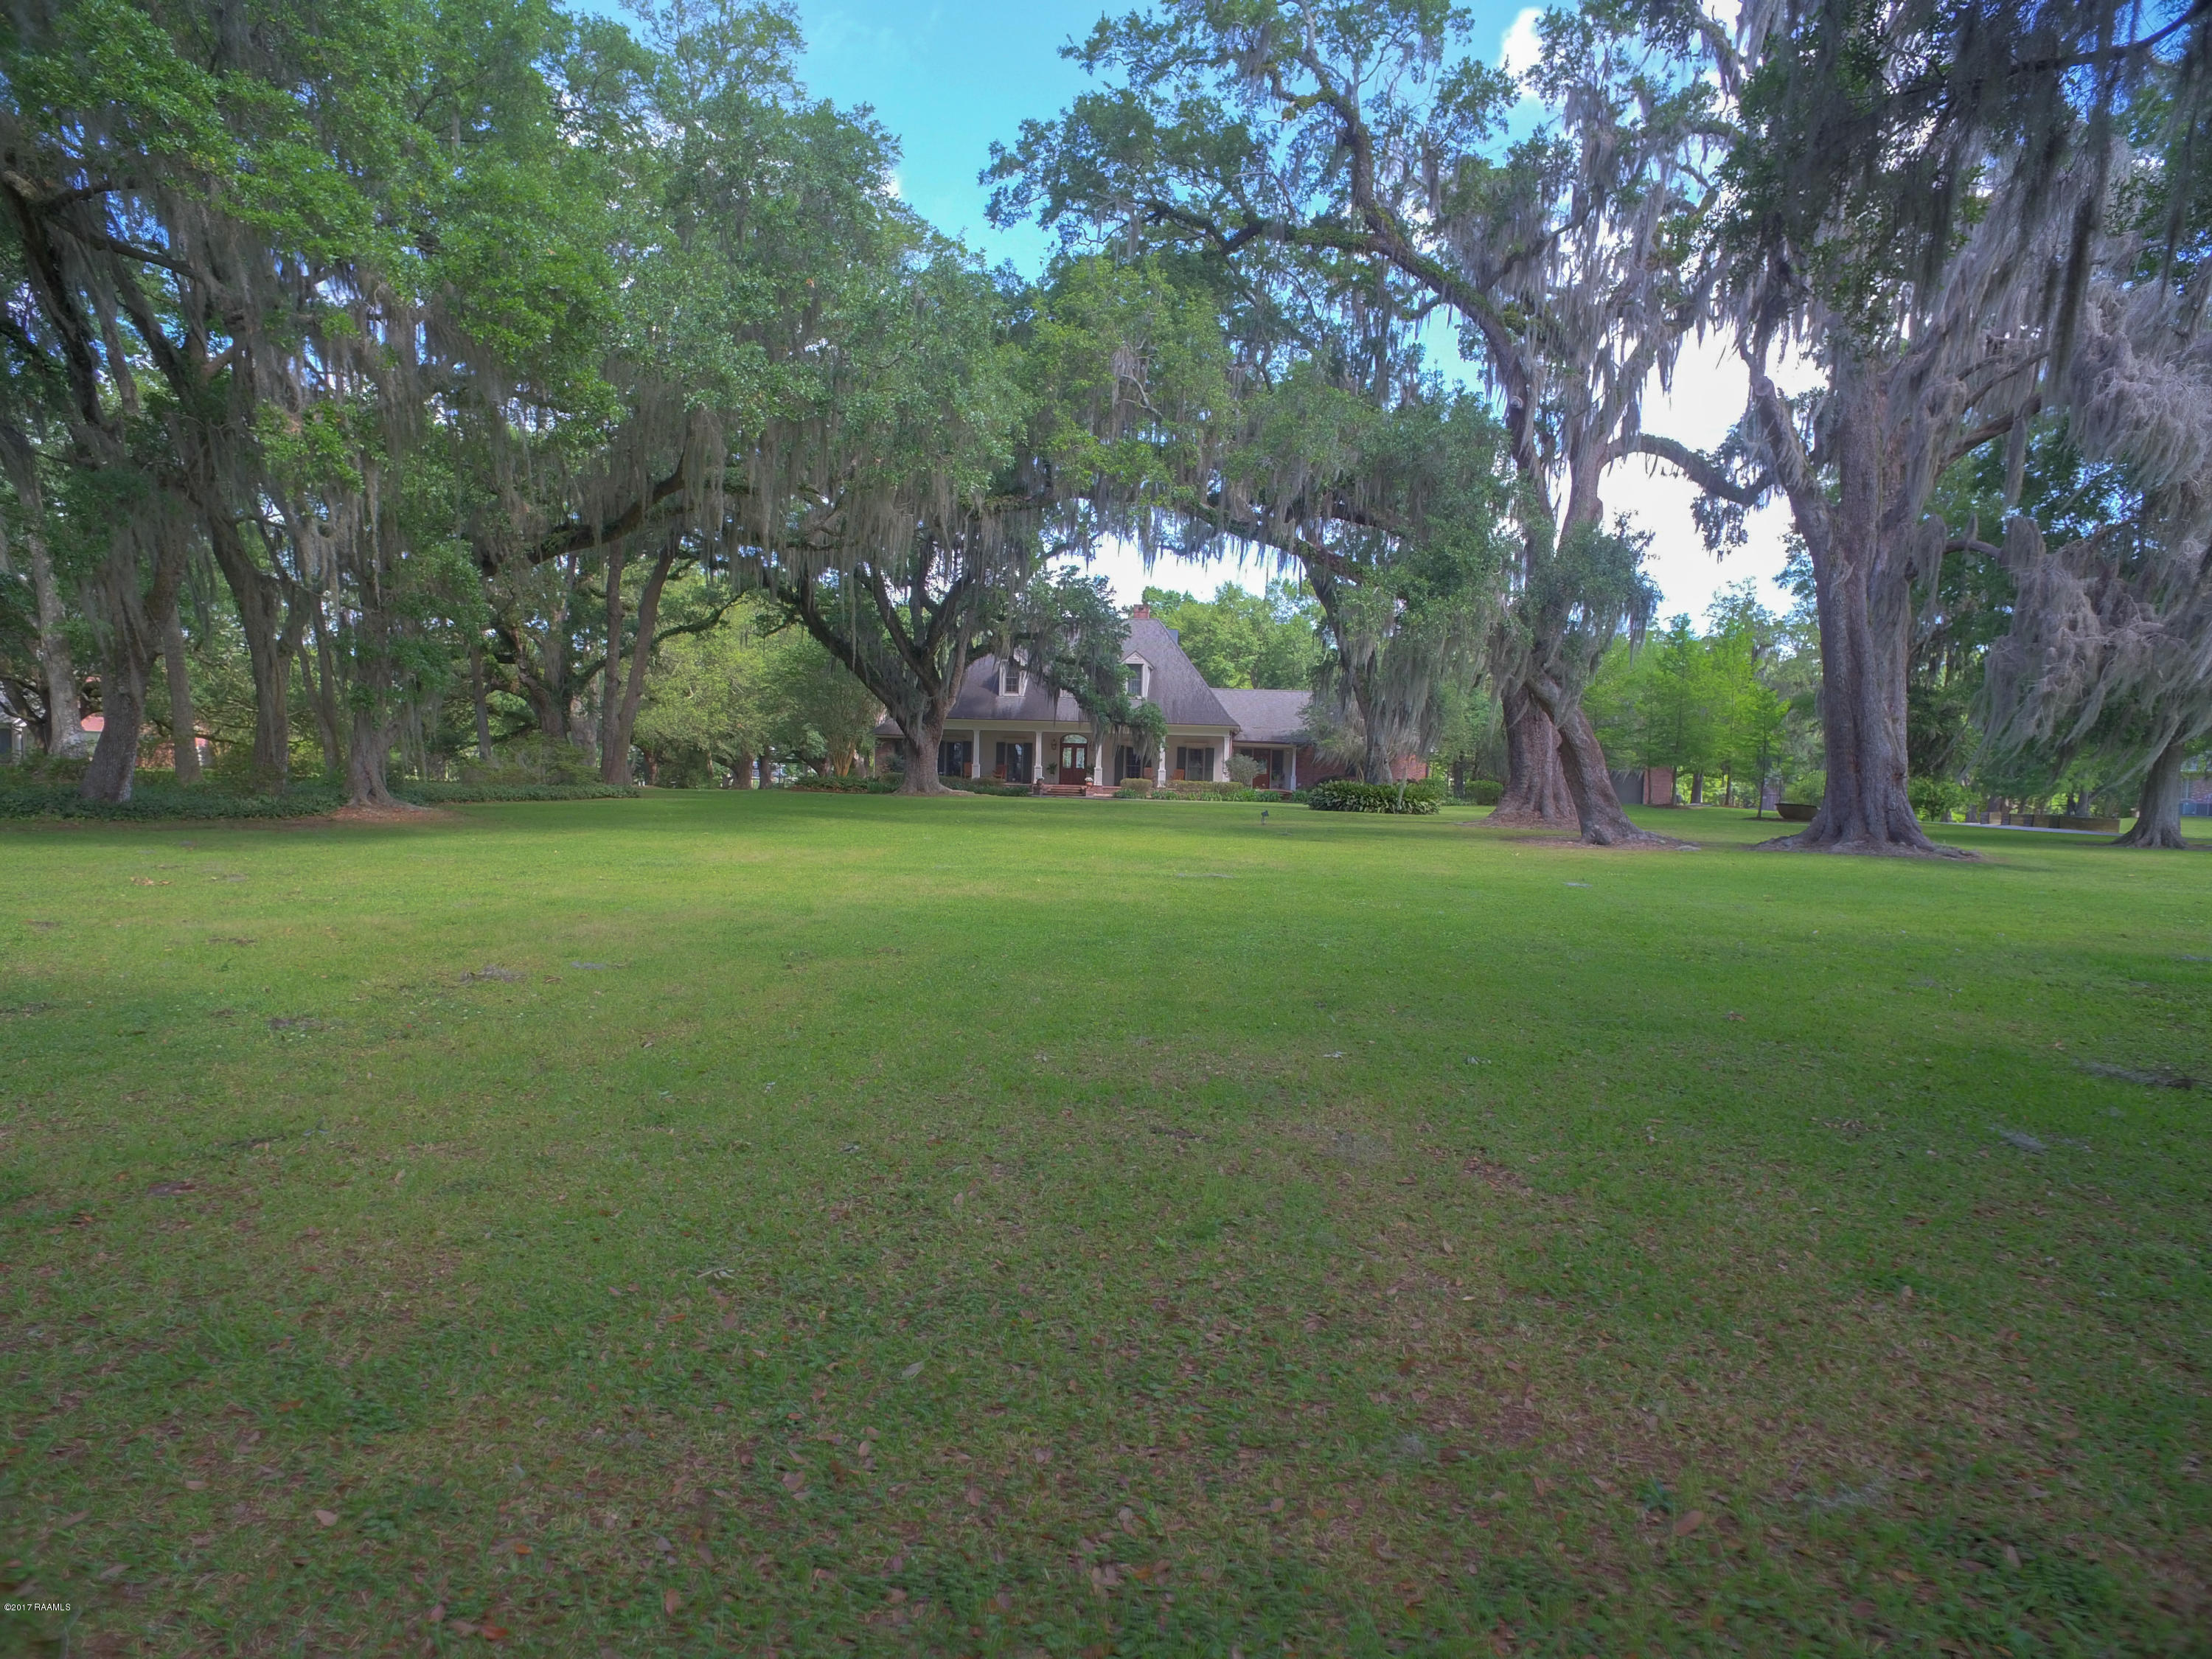 4550 Chitimacha Trail, Jeanerette, LA 70544 Photo #42